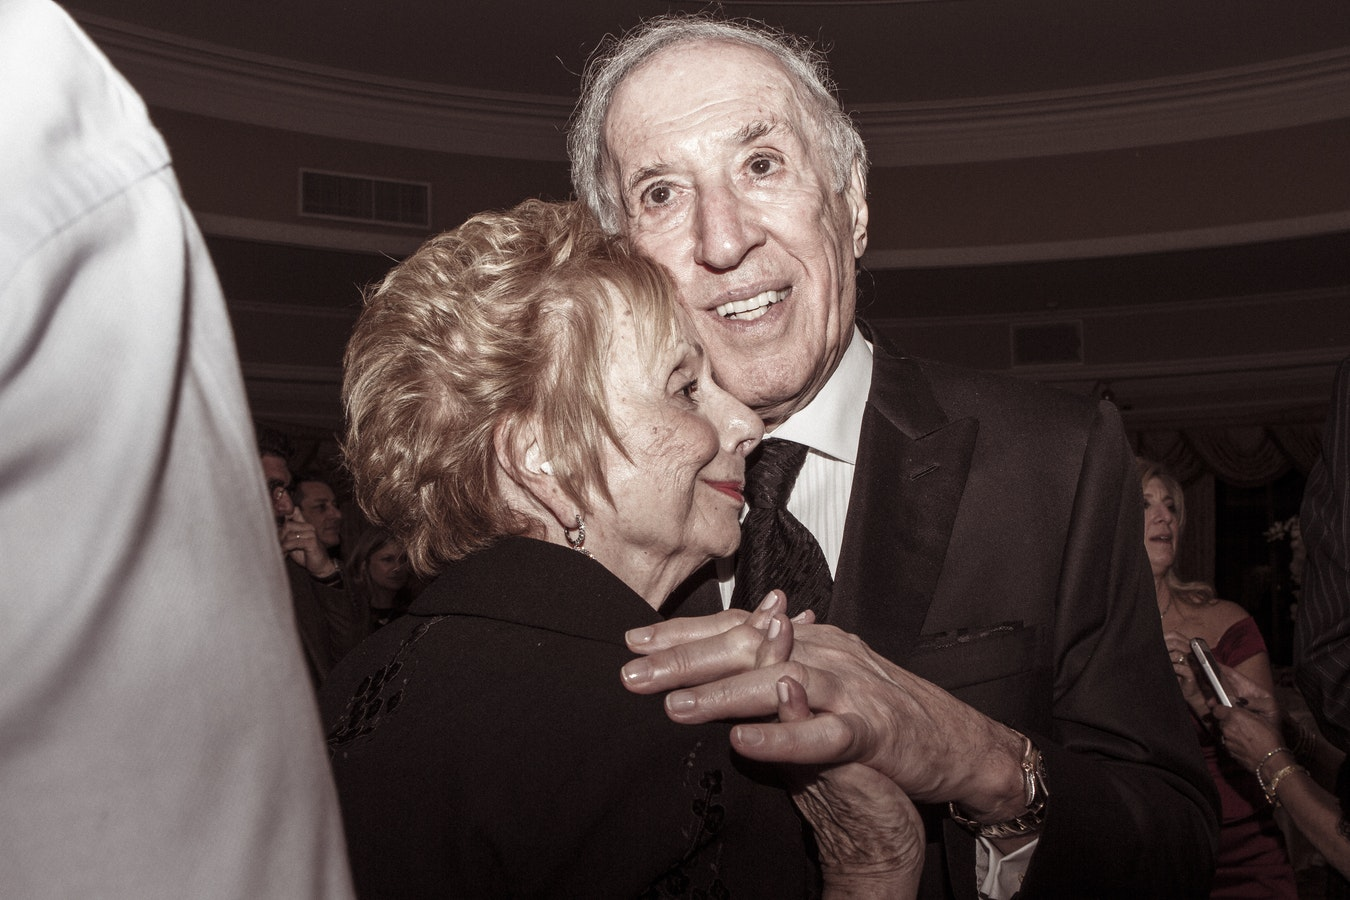 Two older individuals enjoying a nice dance together. Dancing is a nice form of exercise that can help with exercise